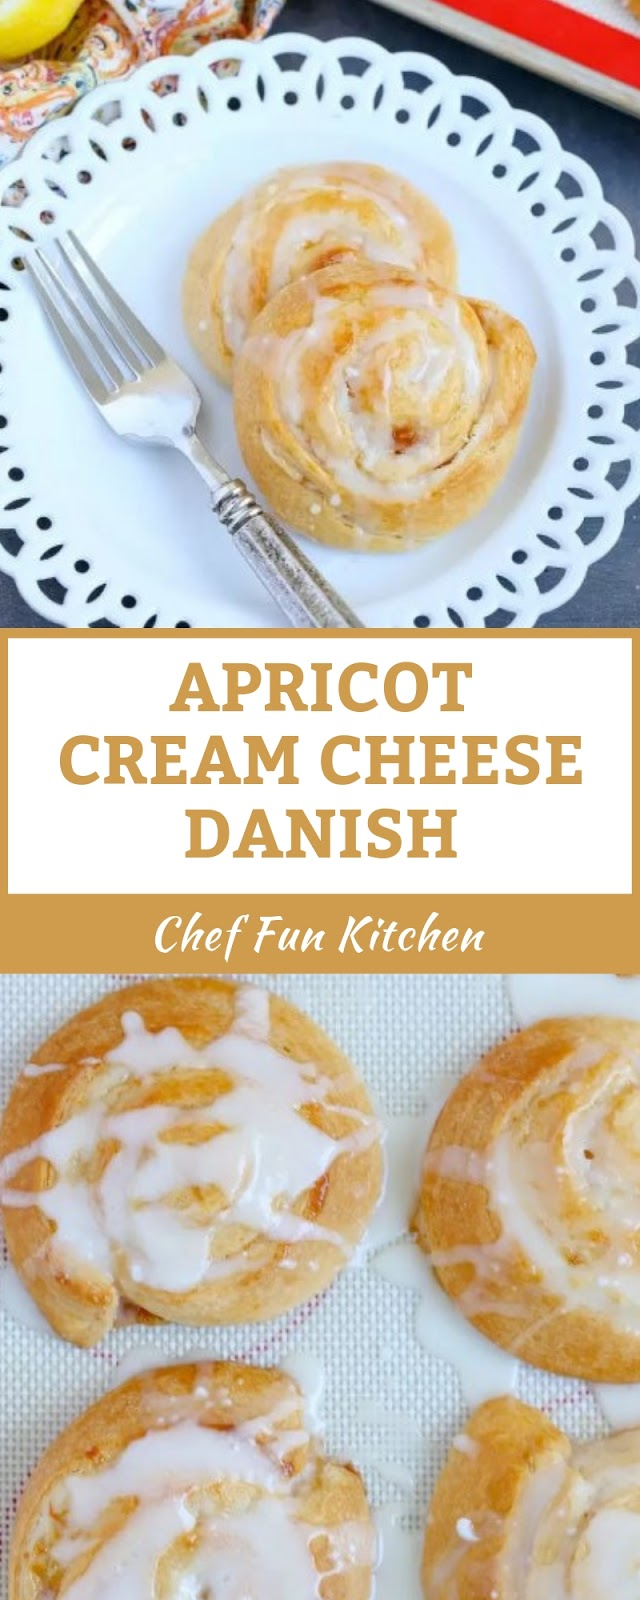 APRICOT CREAM CHEESE DANISH